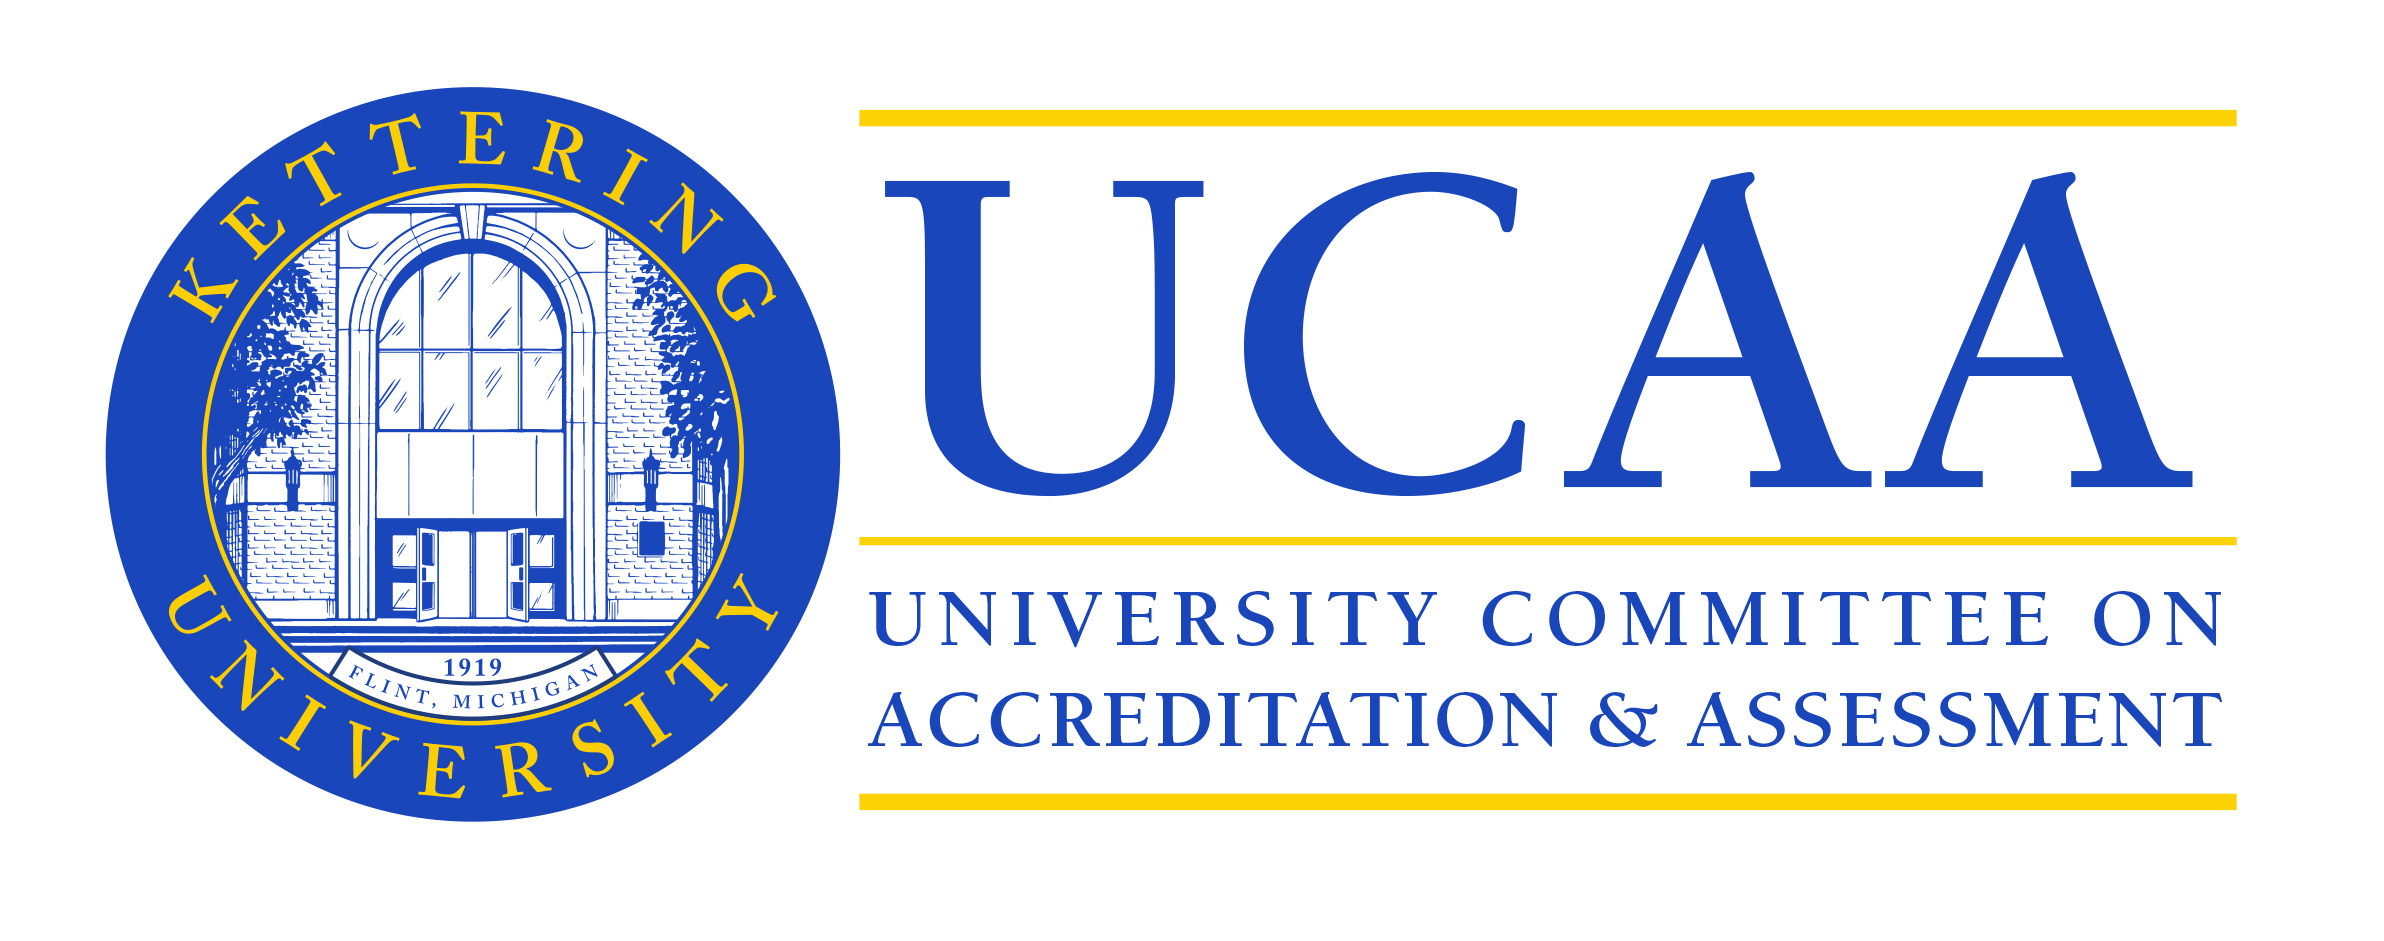 UCAA: University Committee on Accreditation & Assessment